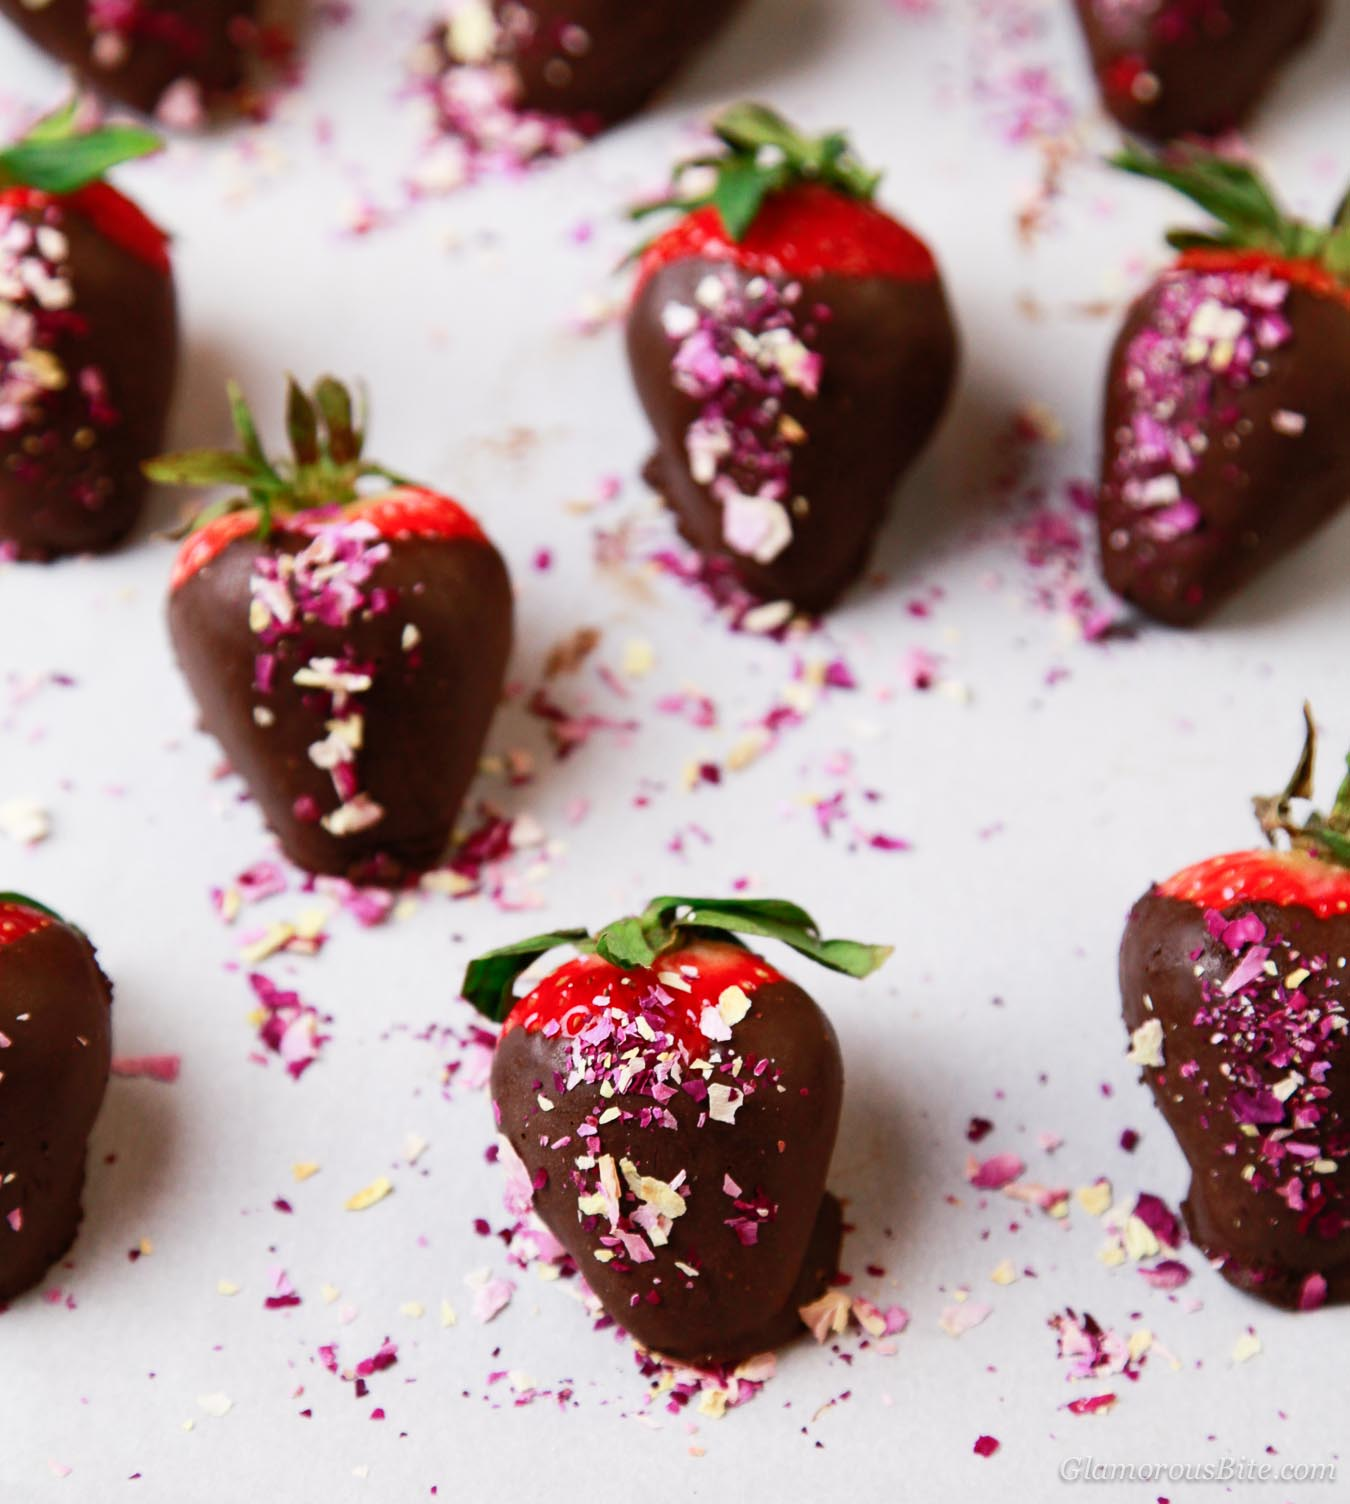 Homemade Chocolate Covered Strawberries and Rose Petals recipe